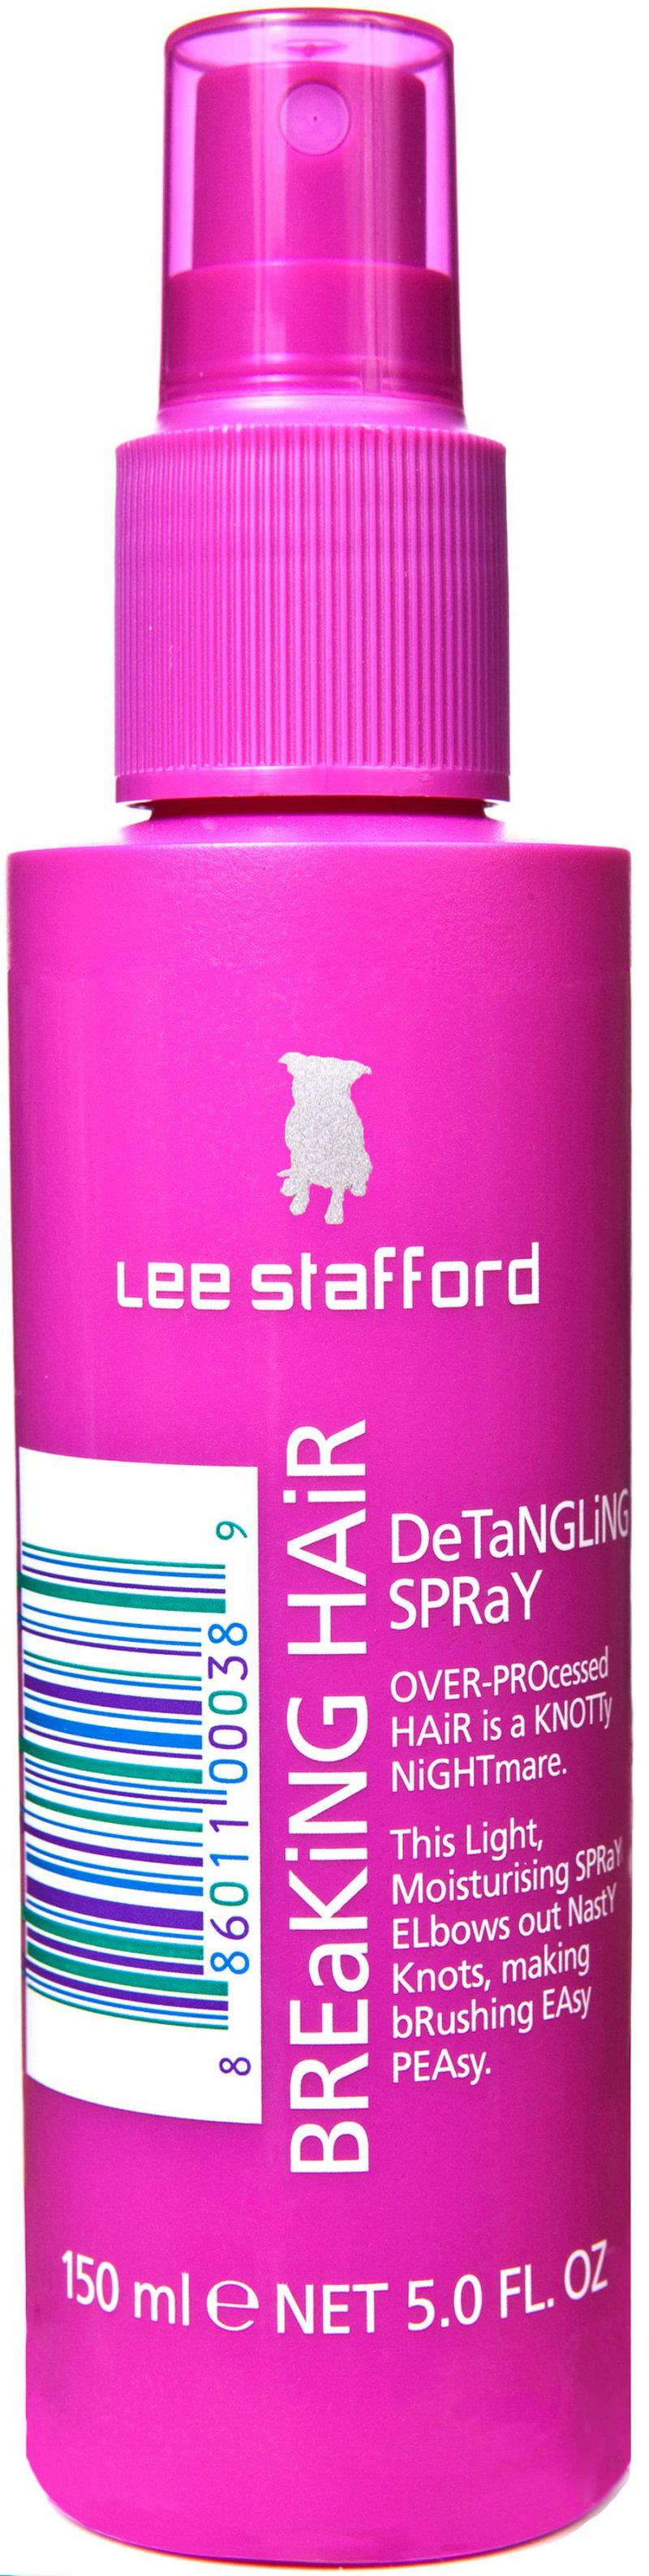 Lee Stafford - Breaking Hair Detangling Spray 150 Ml